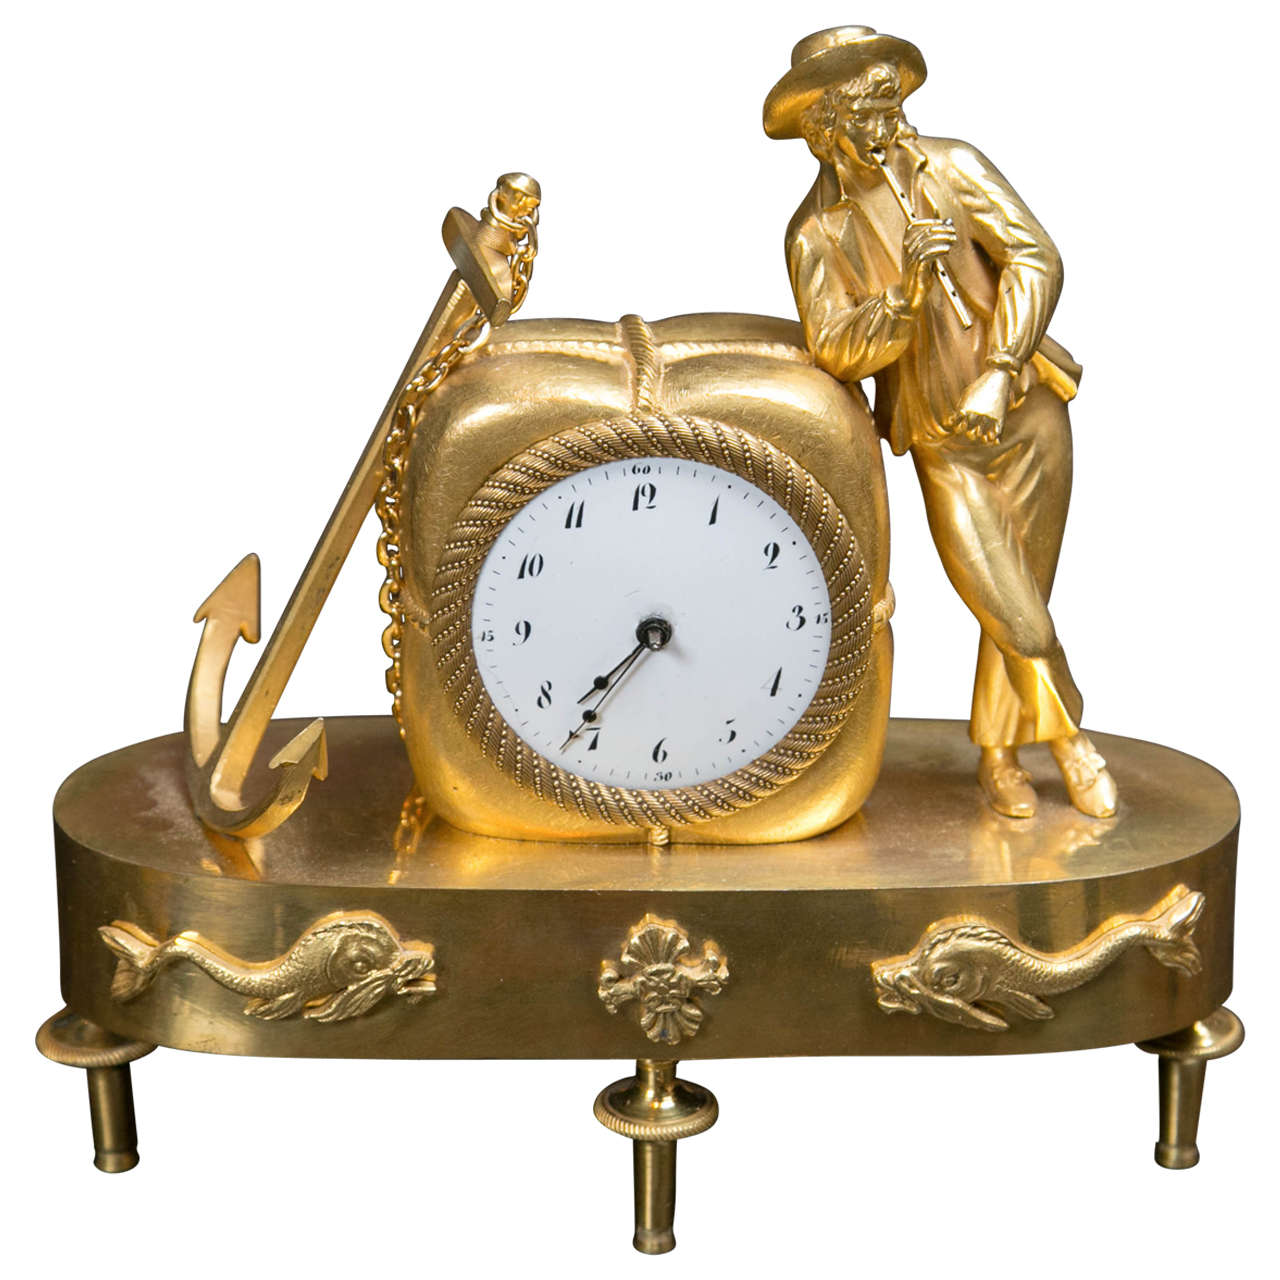 Sailing Themed Clock By William Gibb At 1stdibs